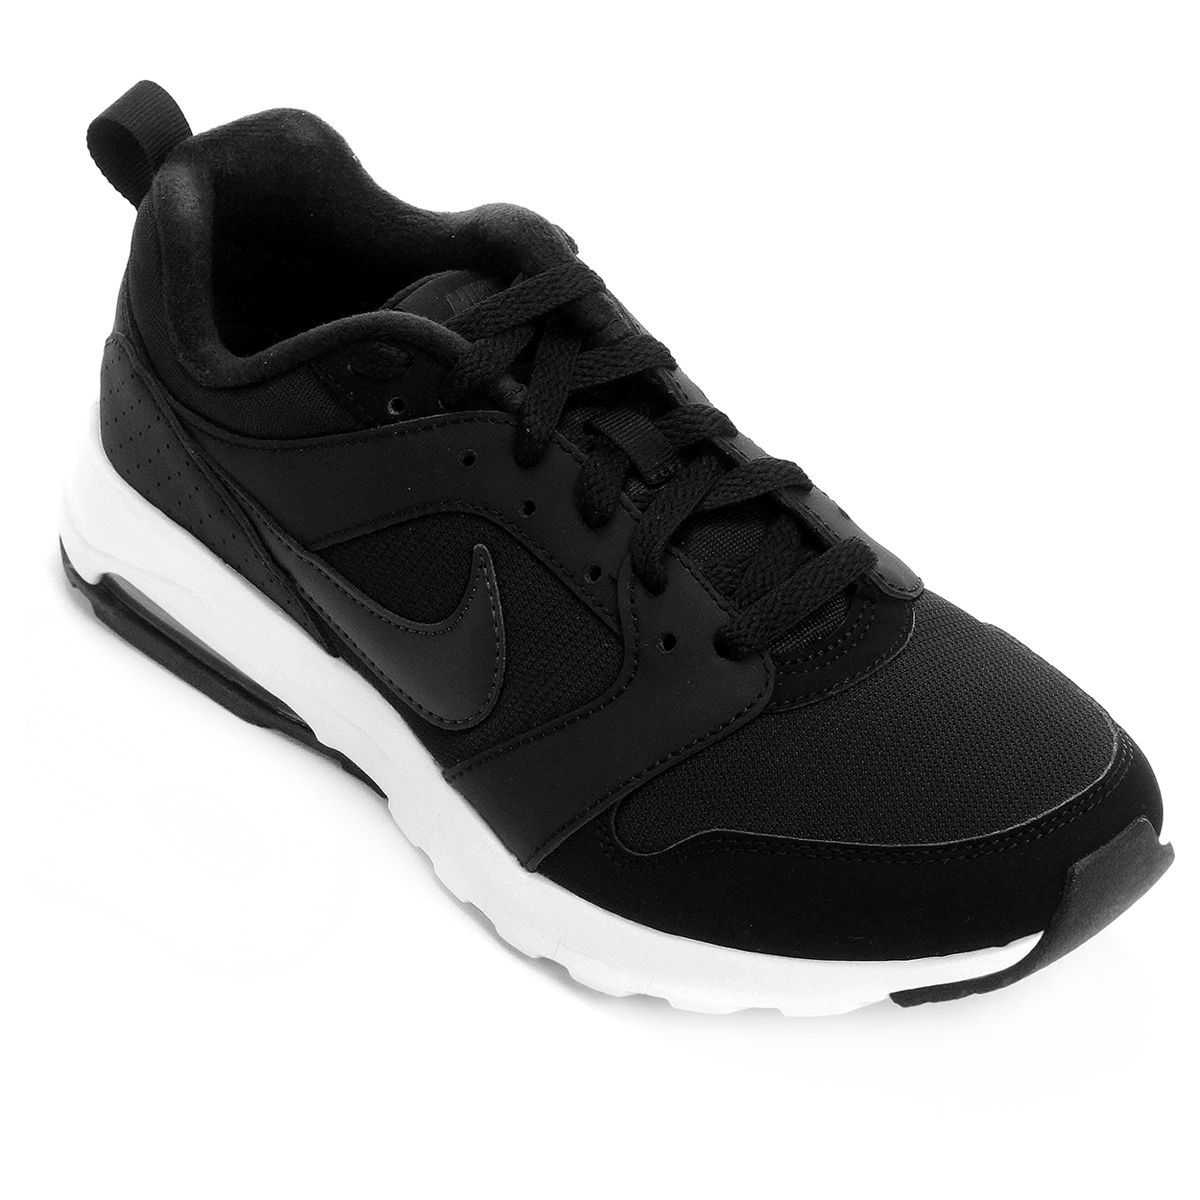 3479f0af855 ... uk netshoes tênis nike air max motion r 15980 07cf7 95b54